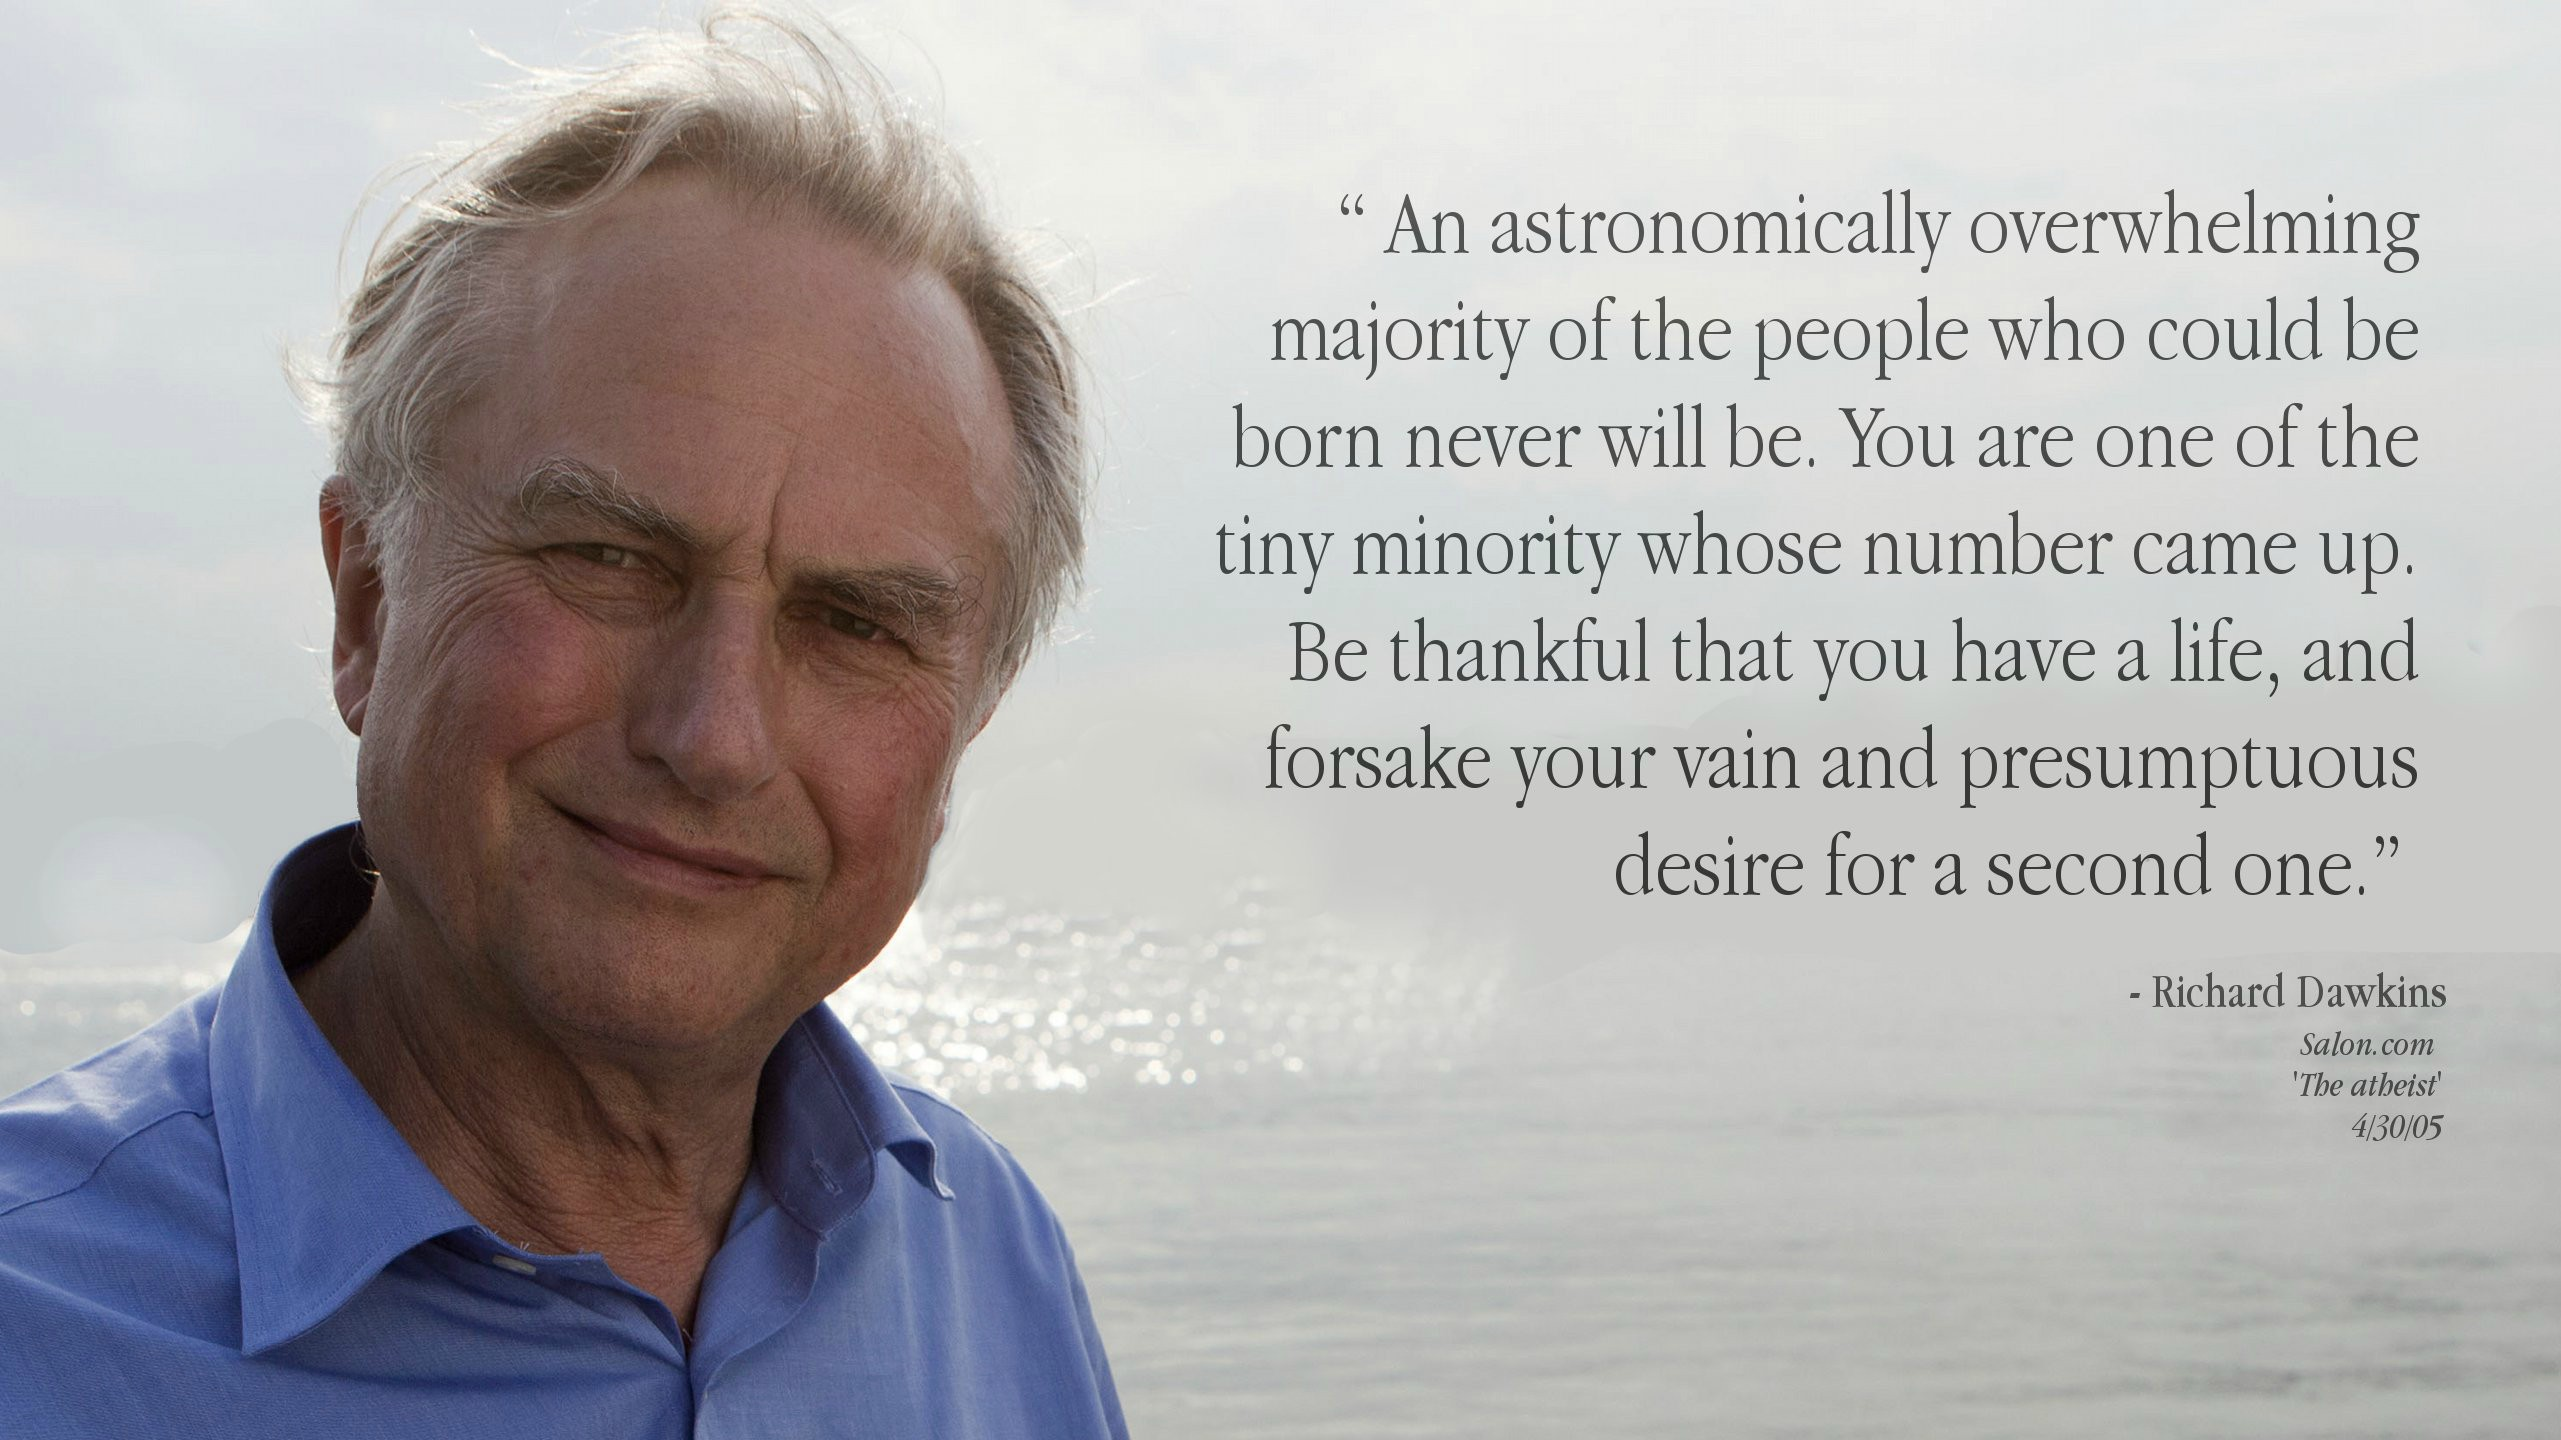 Richard Dawkins's quote #6